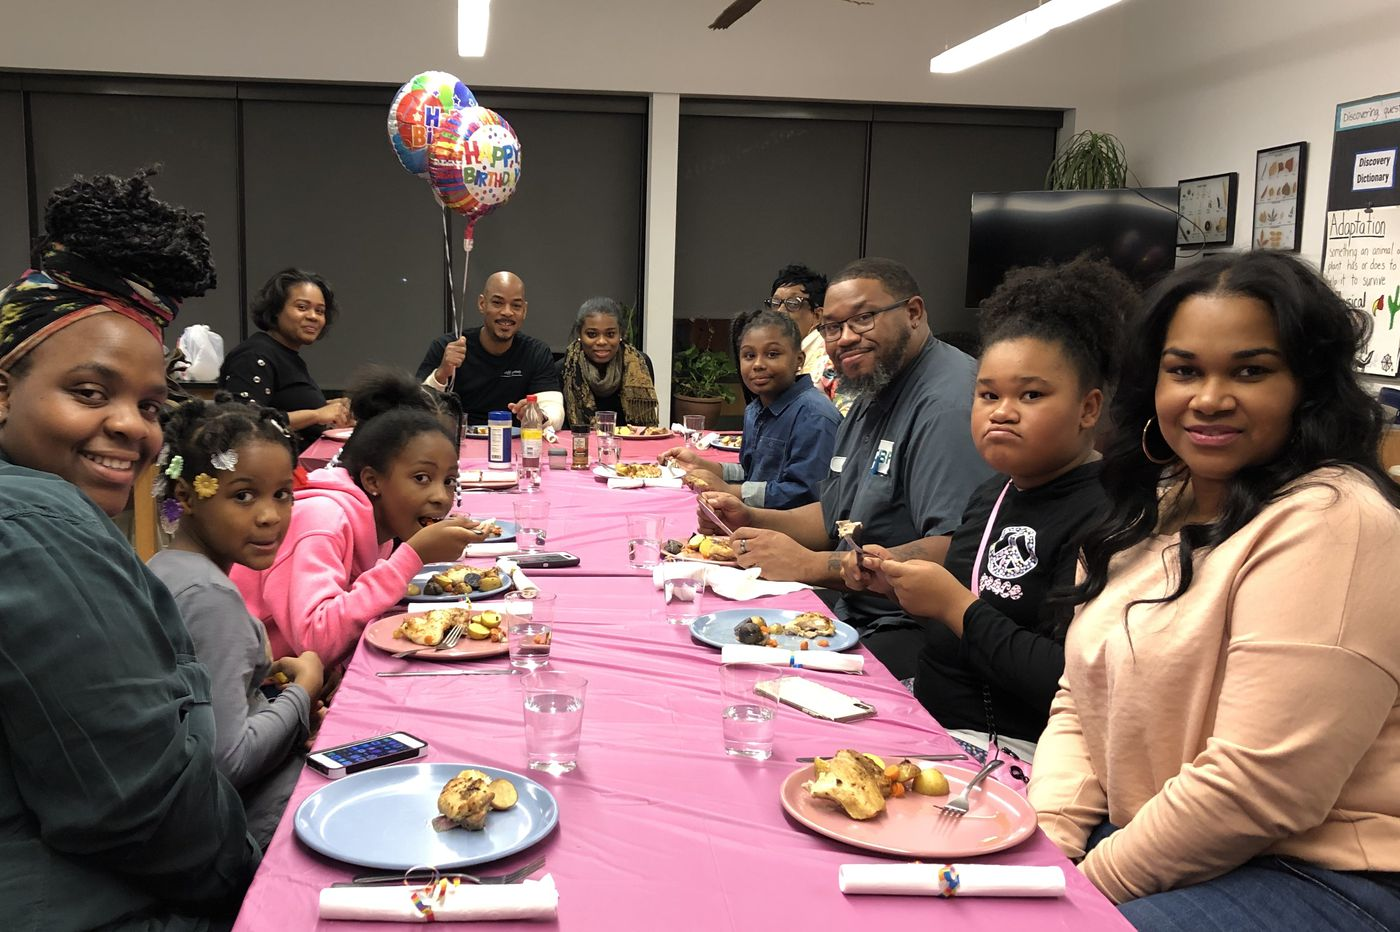 A party to celebrate new skills | My Daughter's Kitchen